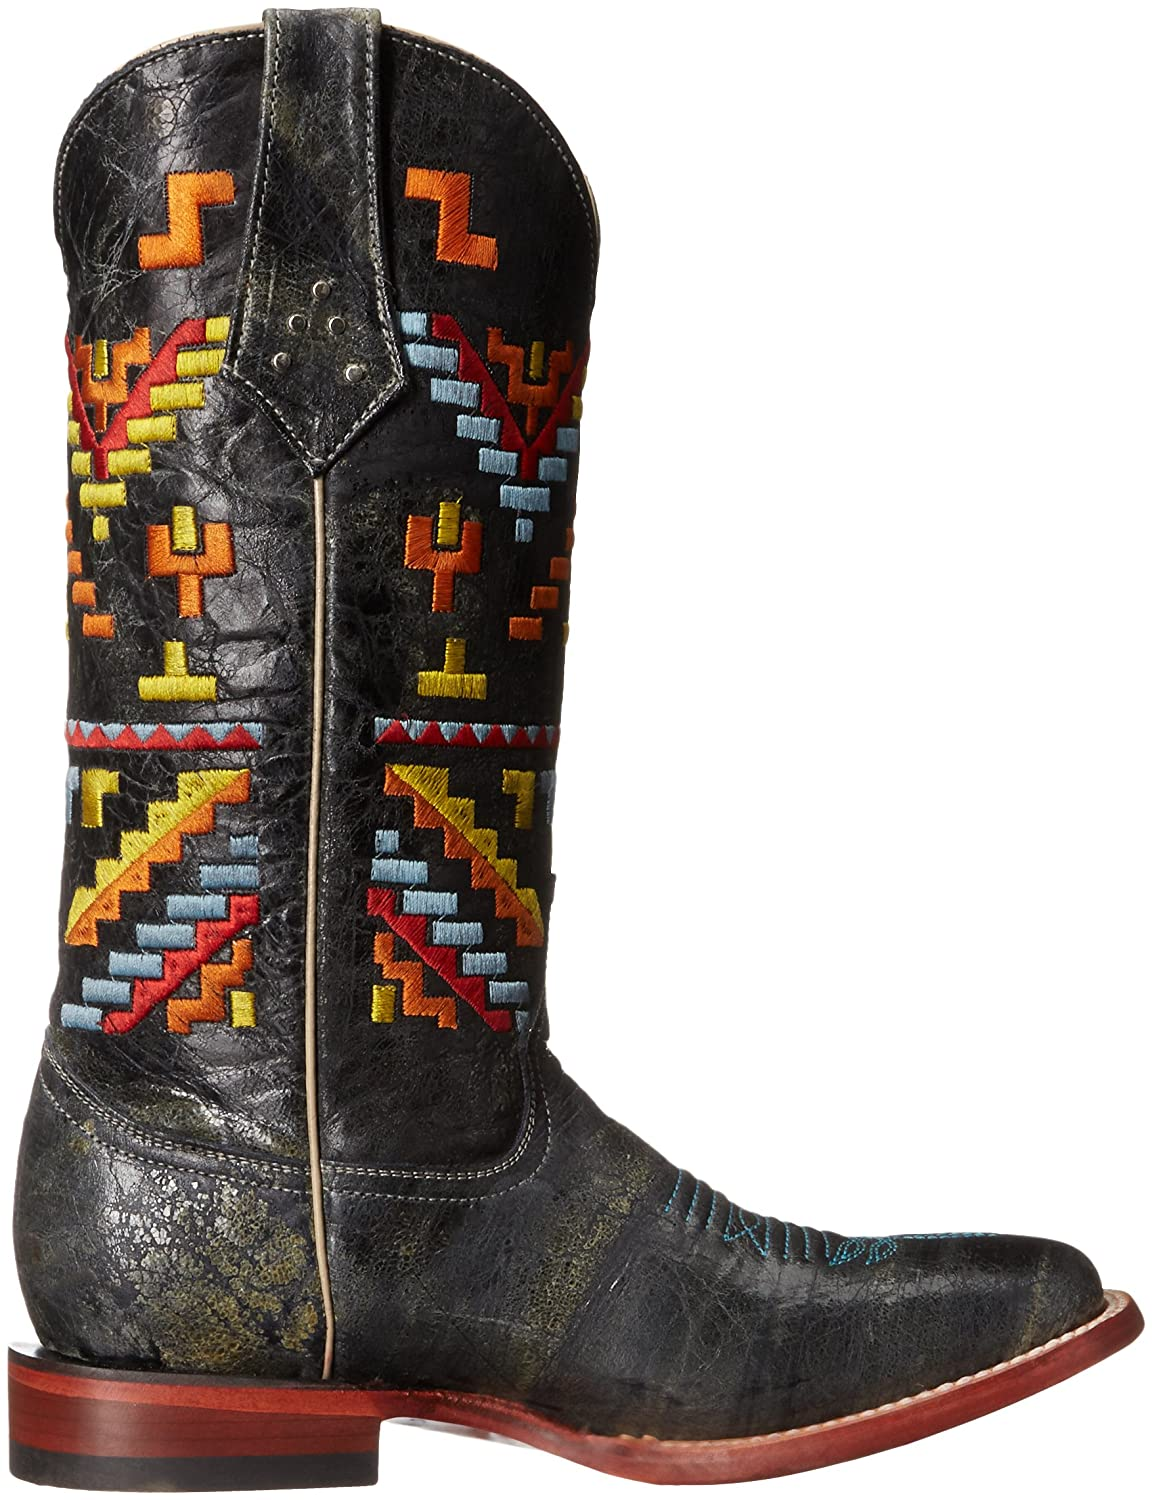 Ferrini Women's Ladies Aztec Cowgirl Teal Square Toe Western Boot B00CA1DEJG 7 B(M) US|Teal